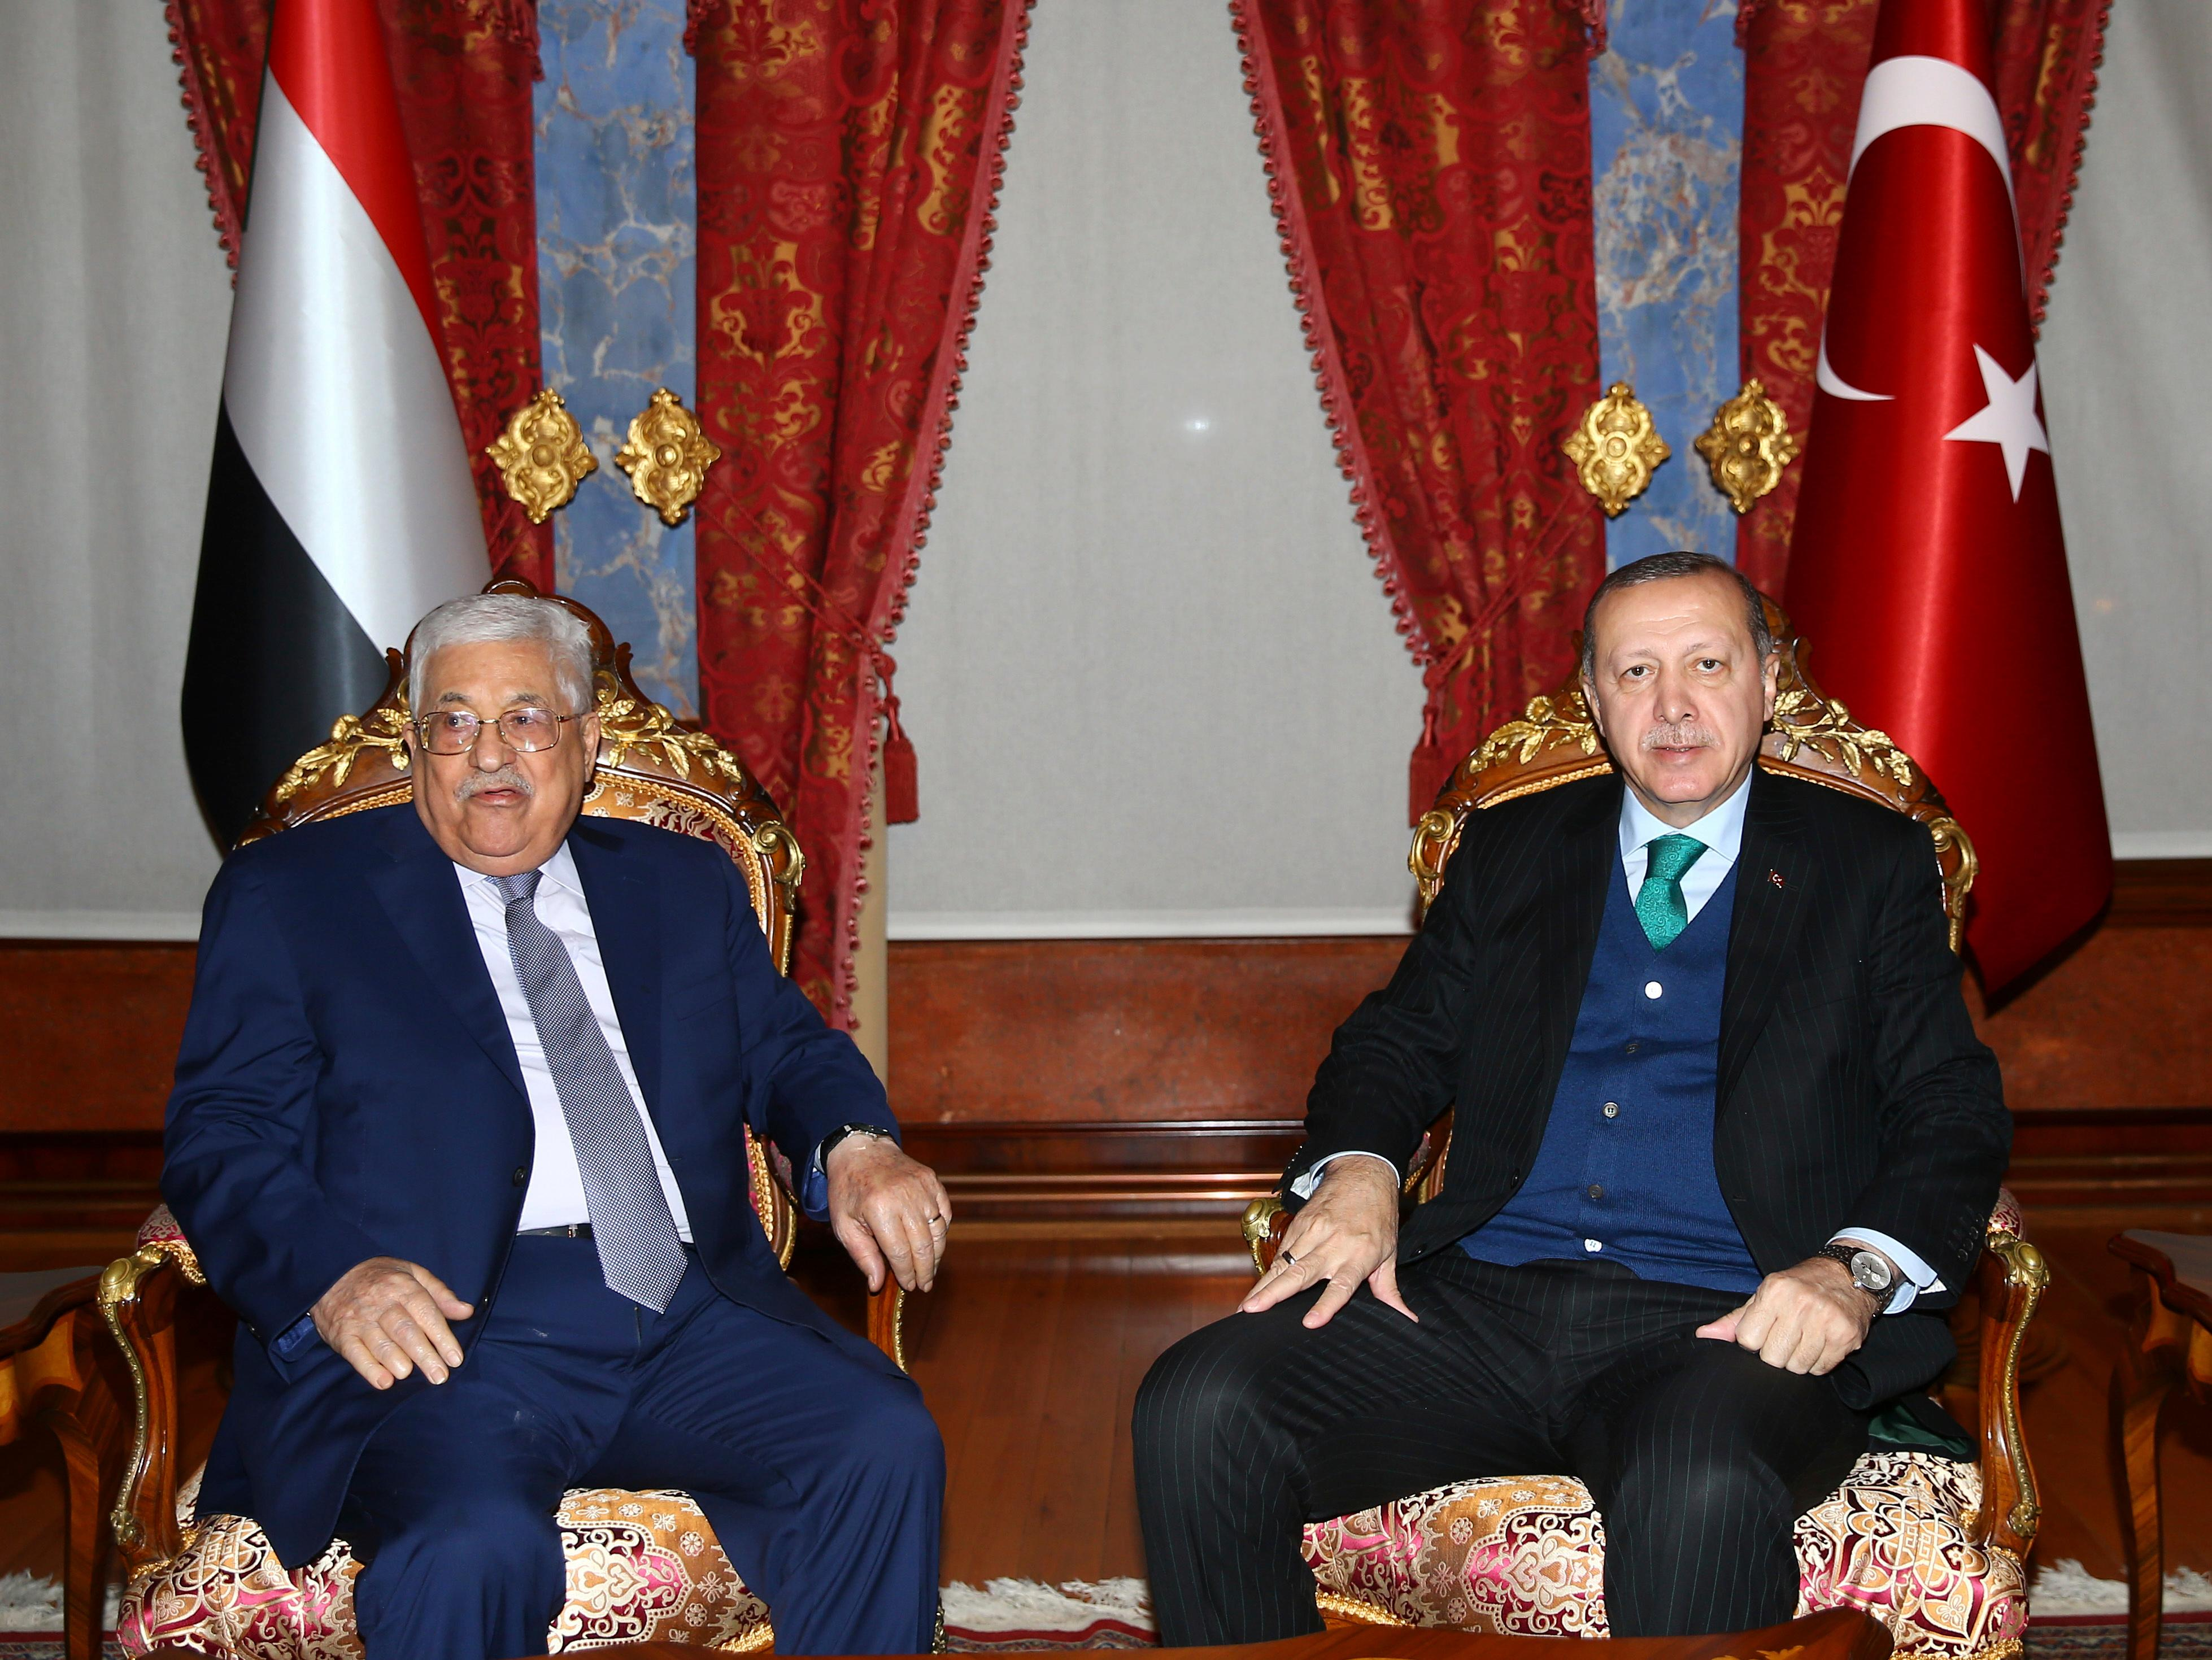 "Turkey's President Recep Tayyip Erdogan, right, meets with Palestinian President Mahmoud Abbas, left, in Istanbul, Tuesday, Dec. 12, 2017. Leaders and high-ranking officials of Muslim countries will meet Wednesday Dec. 13, in Istanbul for an extraordinary summit to discuss the U.S. recognition of Jerusalem as Israel's capital. Erdogan has been vehemently critical of the U.S. move and said the leaders would relay a ""strong message."" (Kayhan Ozer/Pool Photo via AP)"